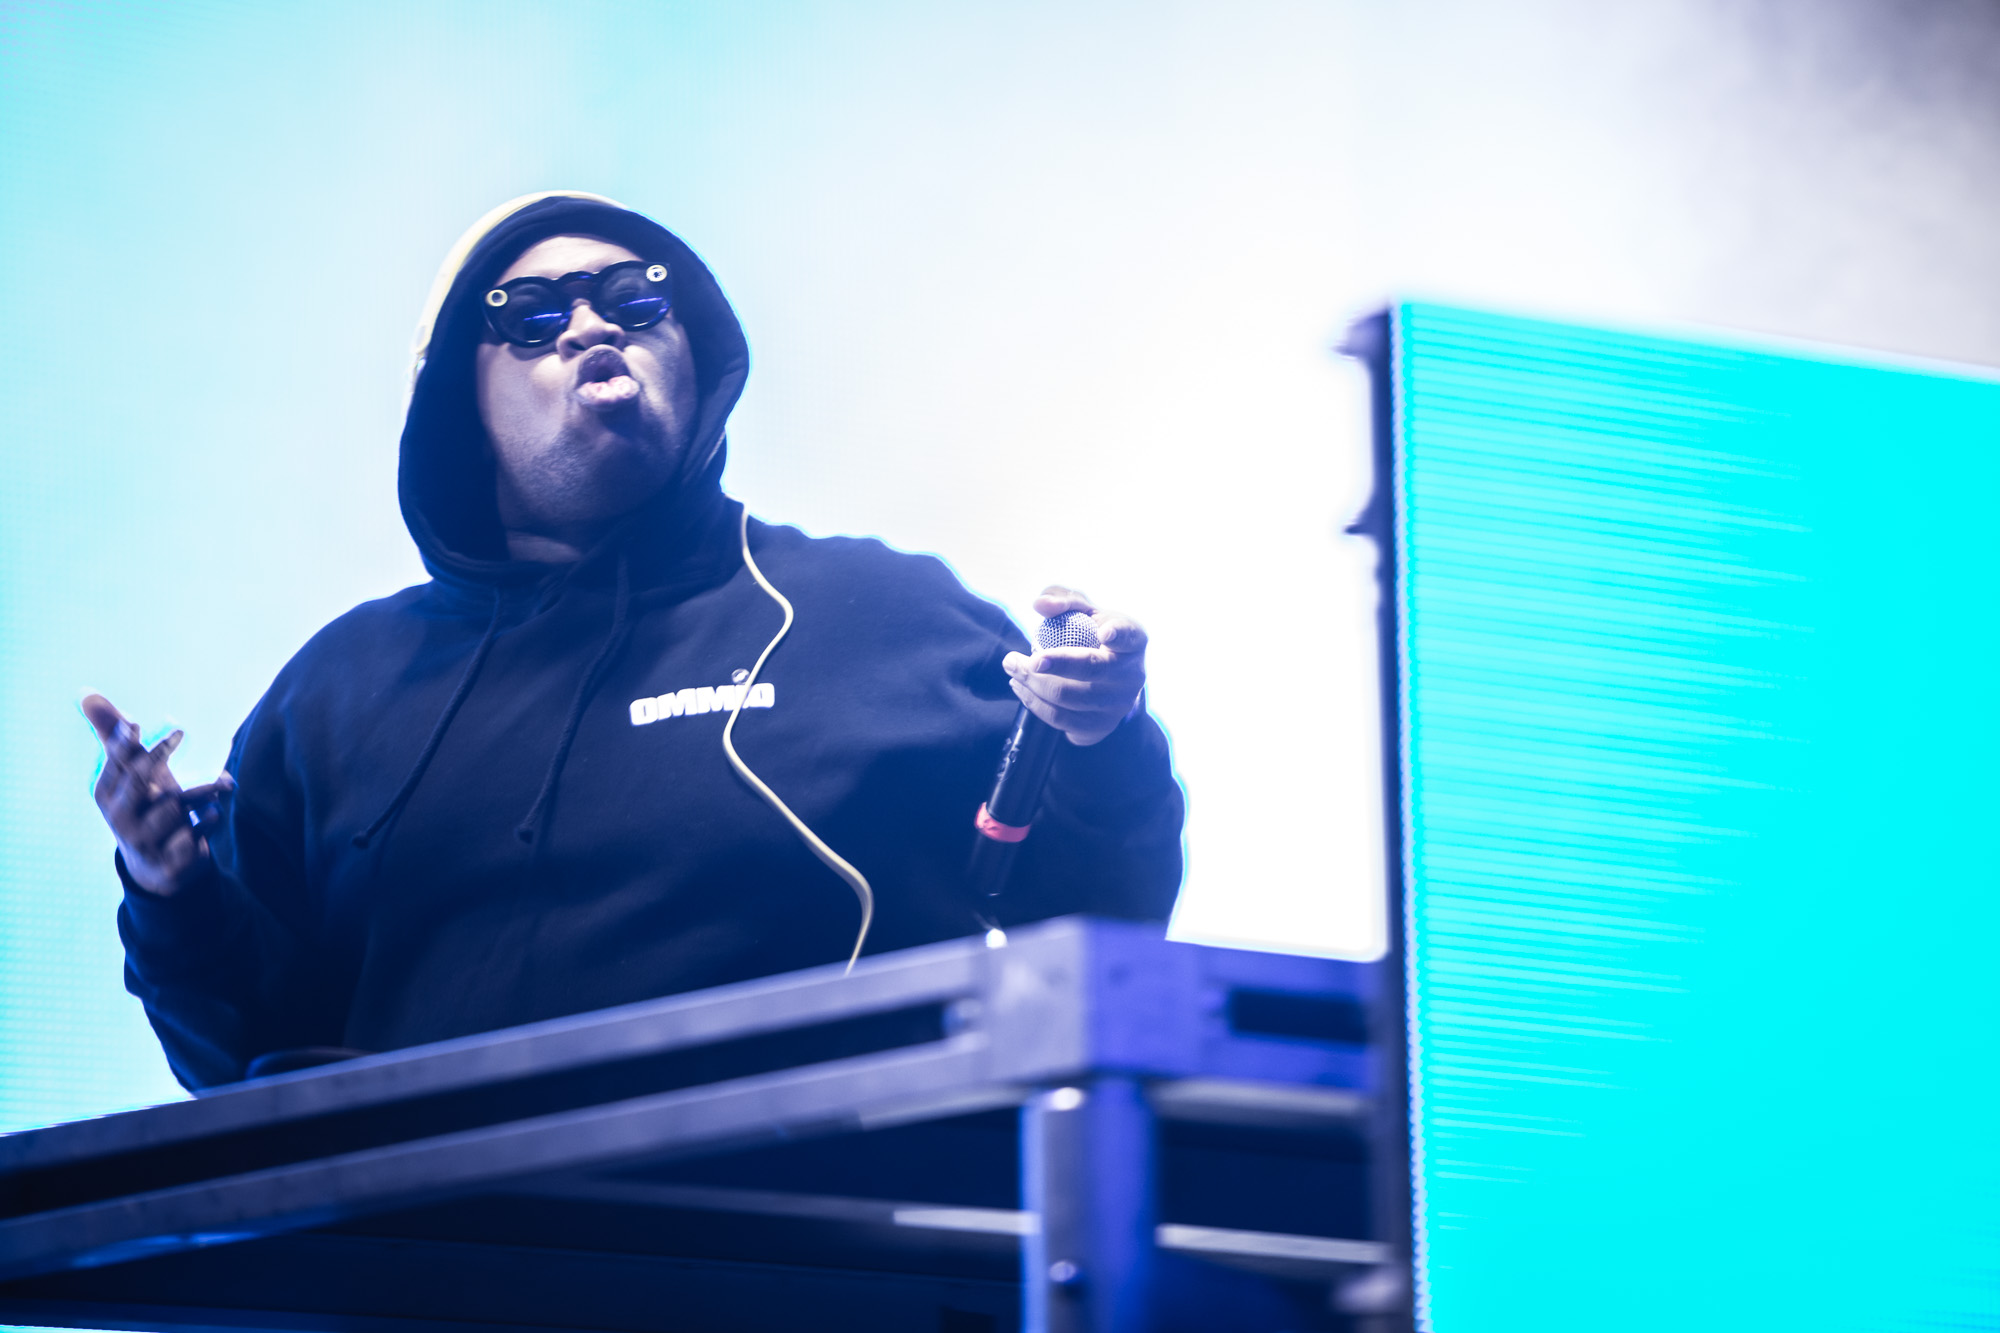 DJ Mustard seen here performing at the RBC Bluesfest in Ottawa on Friday, July 7, 2017. The RBC Bluesfest is ranked by Billboard as one of the most successful music events in North America.   ~ RBC Bluesfest Press Images PHOTO/Scott Penner